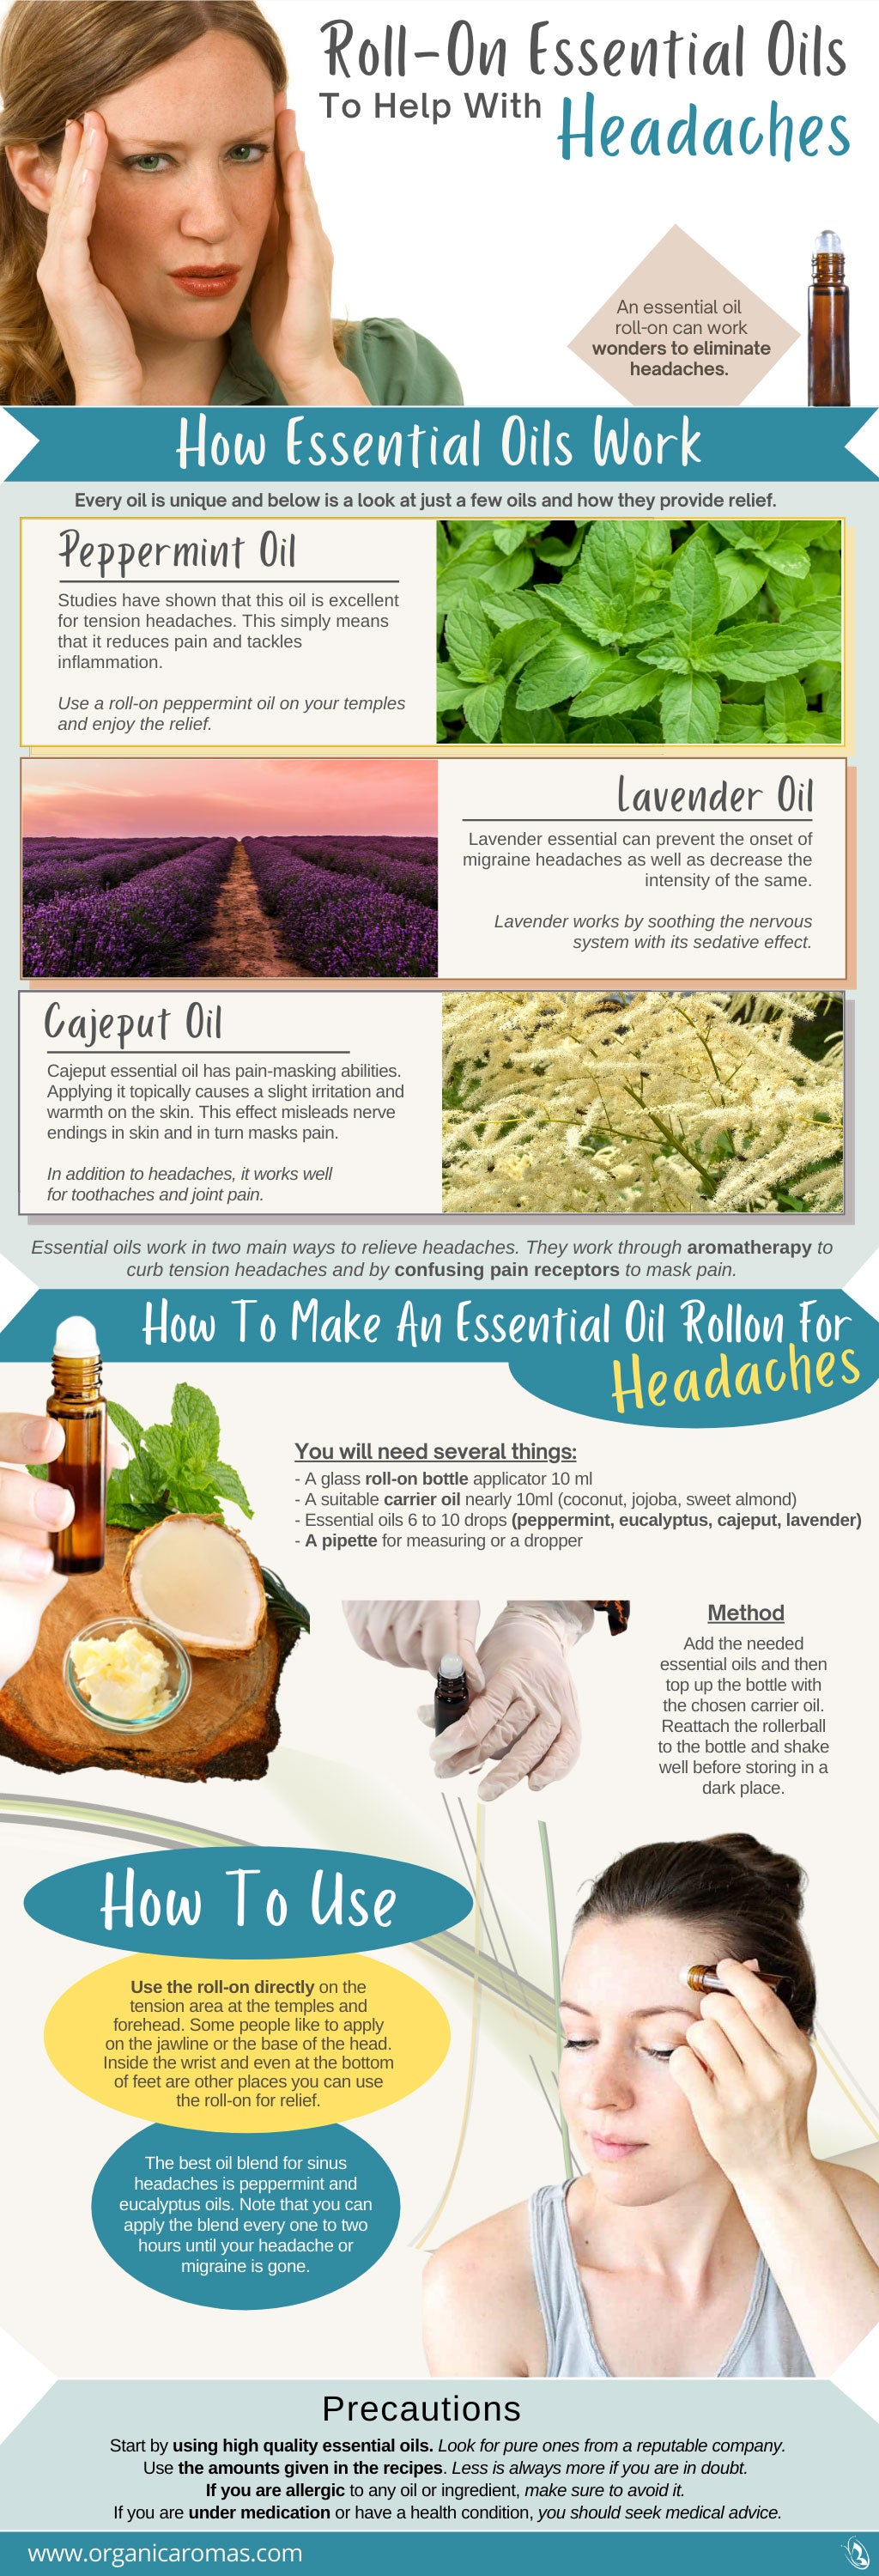 Roll-On Essential Oils To Help With Headaches